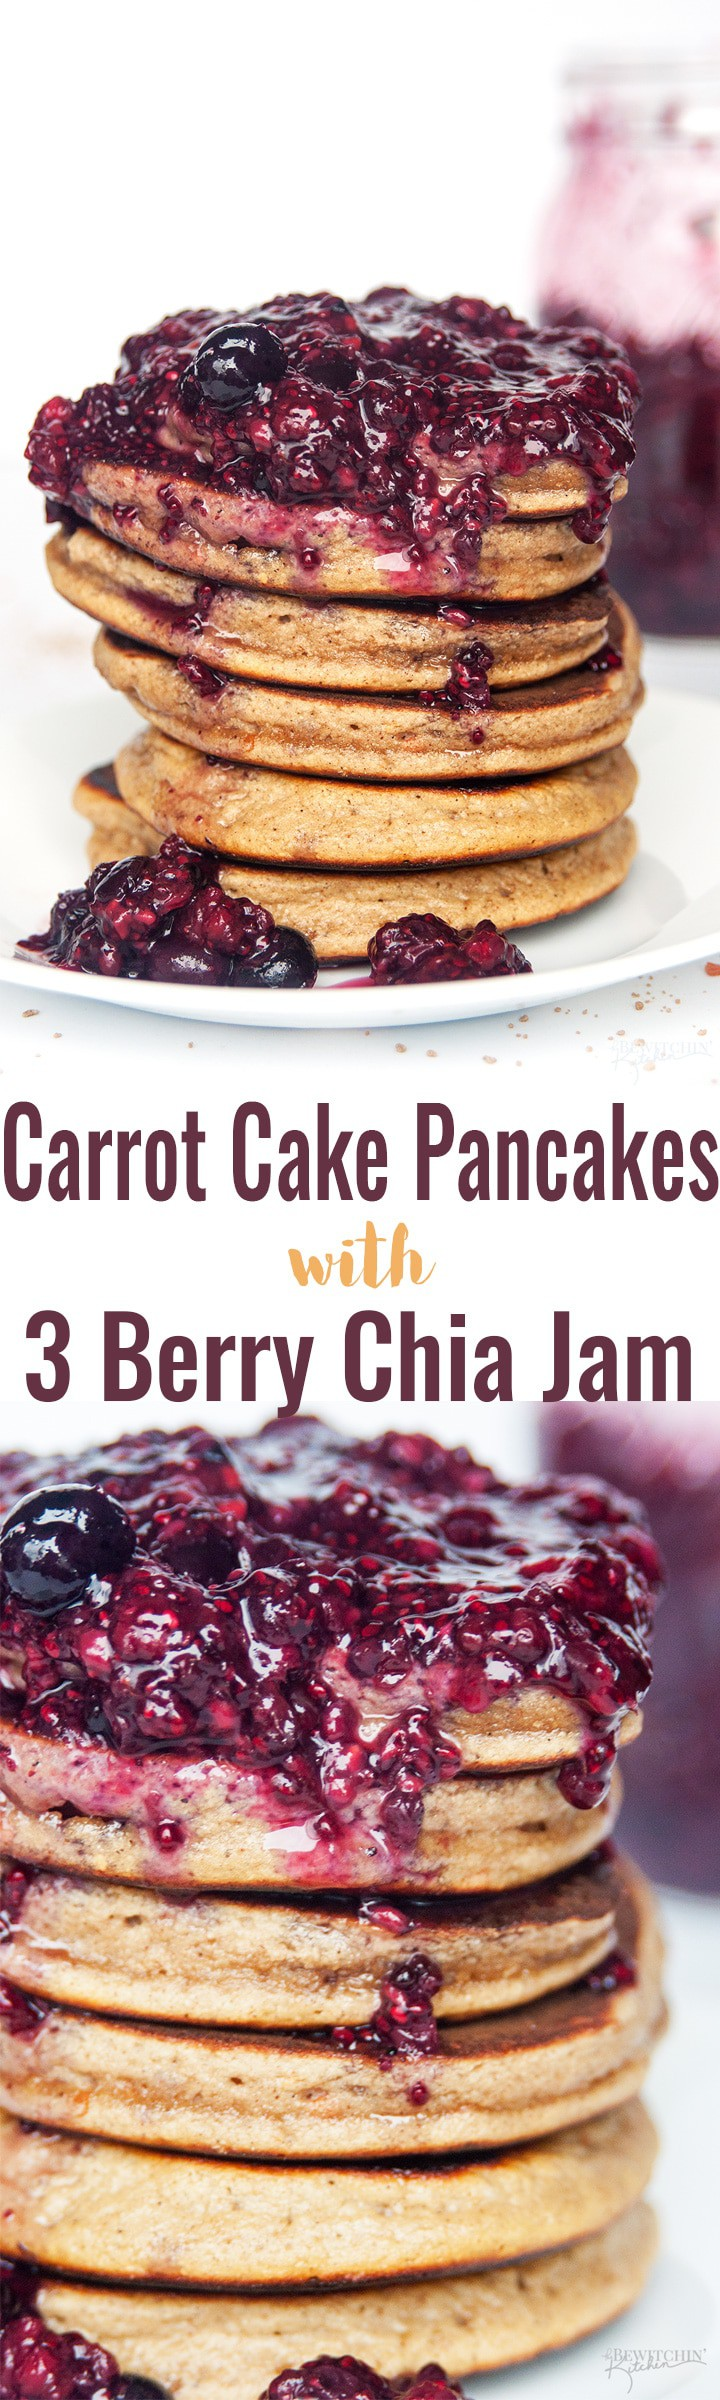 Carrot Cake Pancakes with 3 Berry Chia Jam - this gluten free and grain free pancake recipe is the ultimate breakfast (or brunch). Made with Epicure products, this is a new favorite recipe! thebewitchinkitchen.com